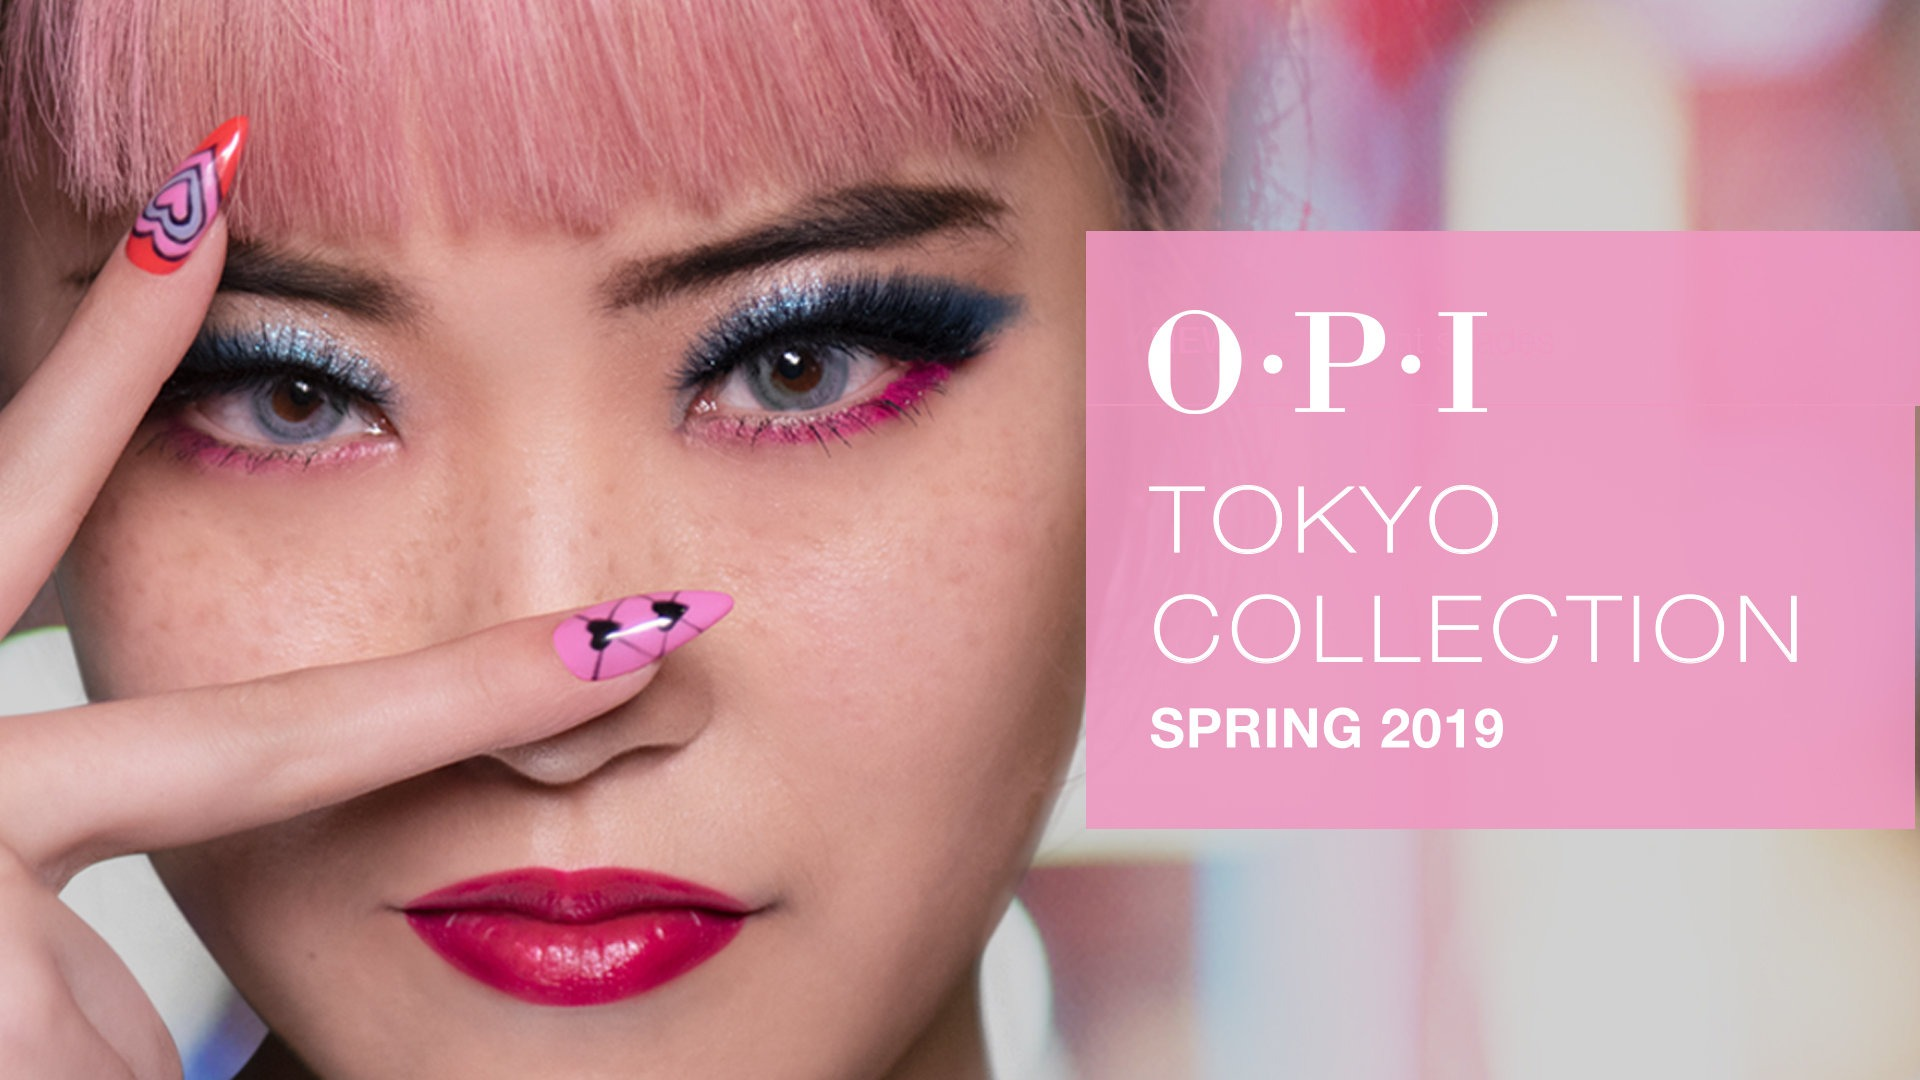 OPI Tokyo Collection Video